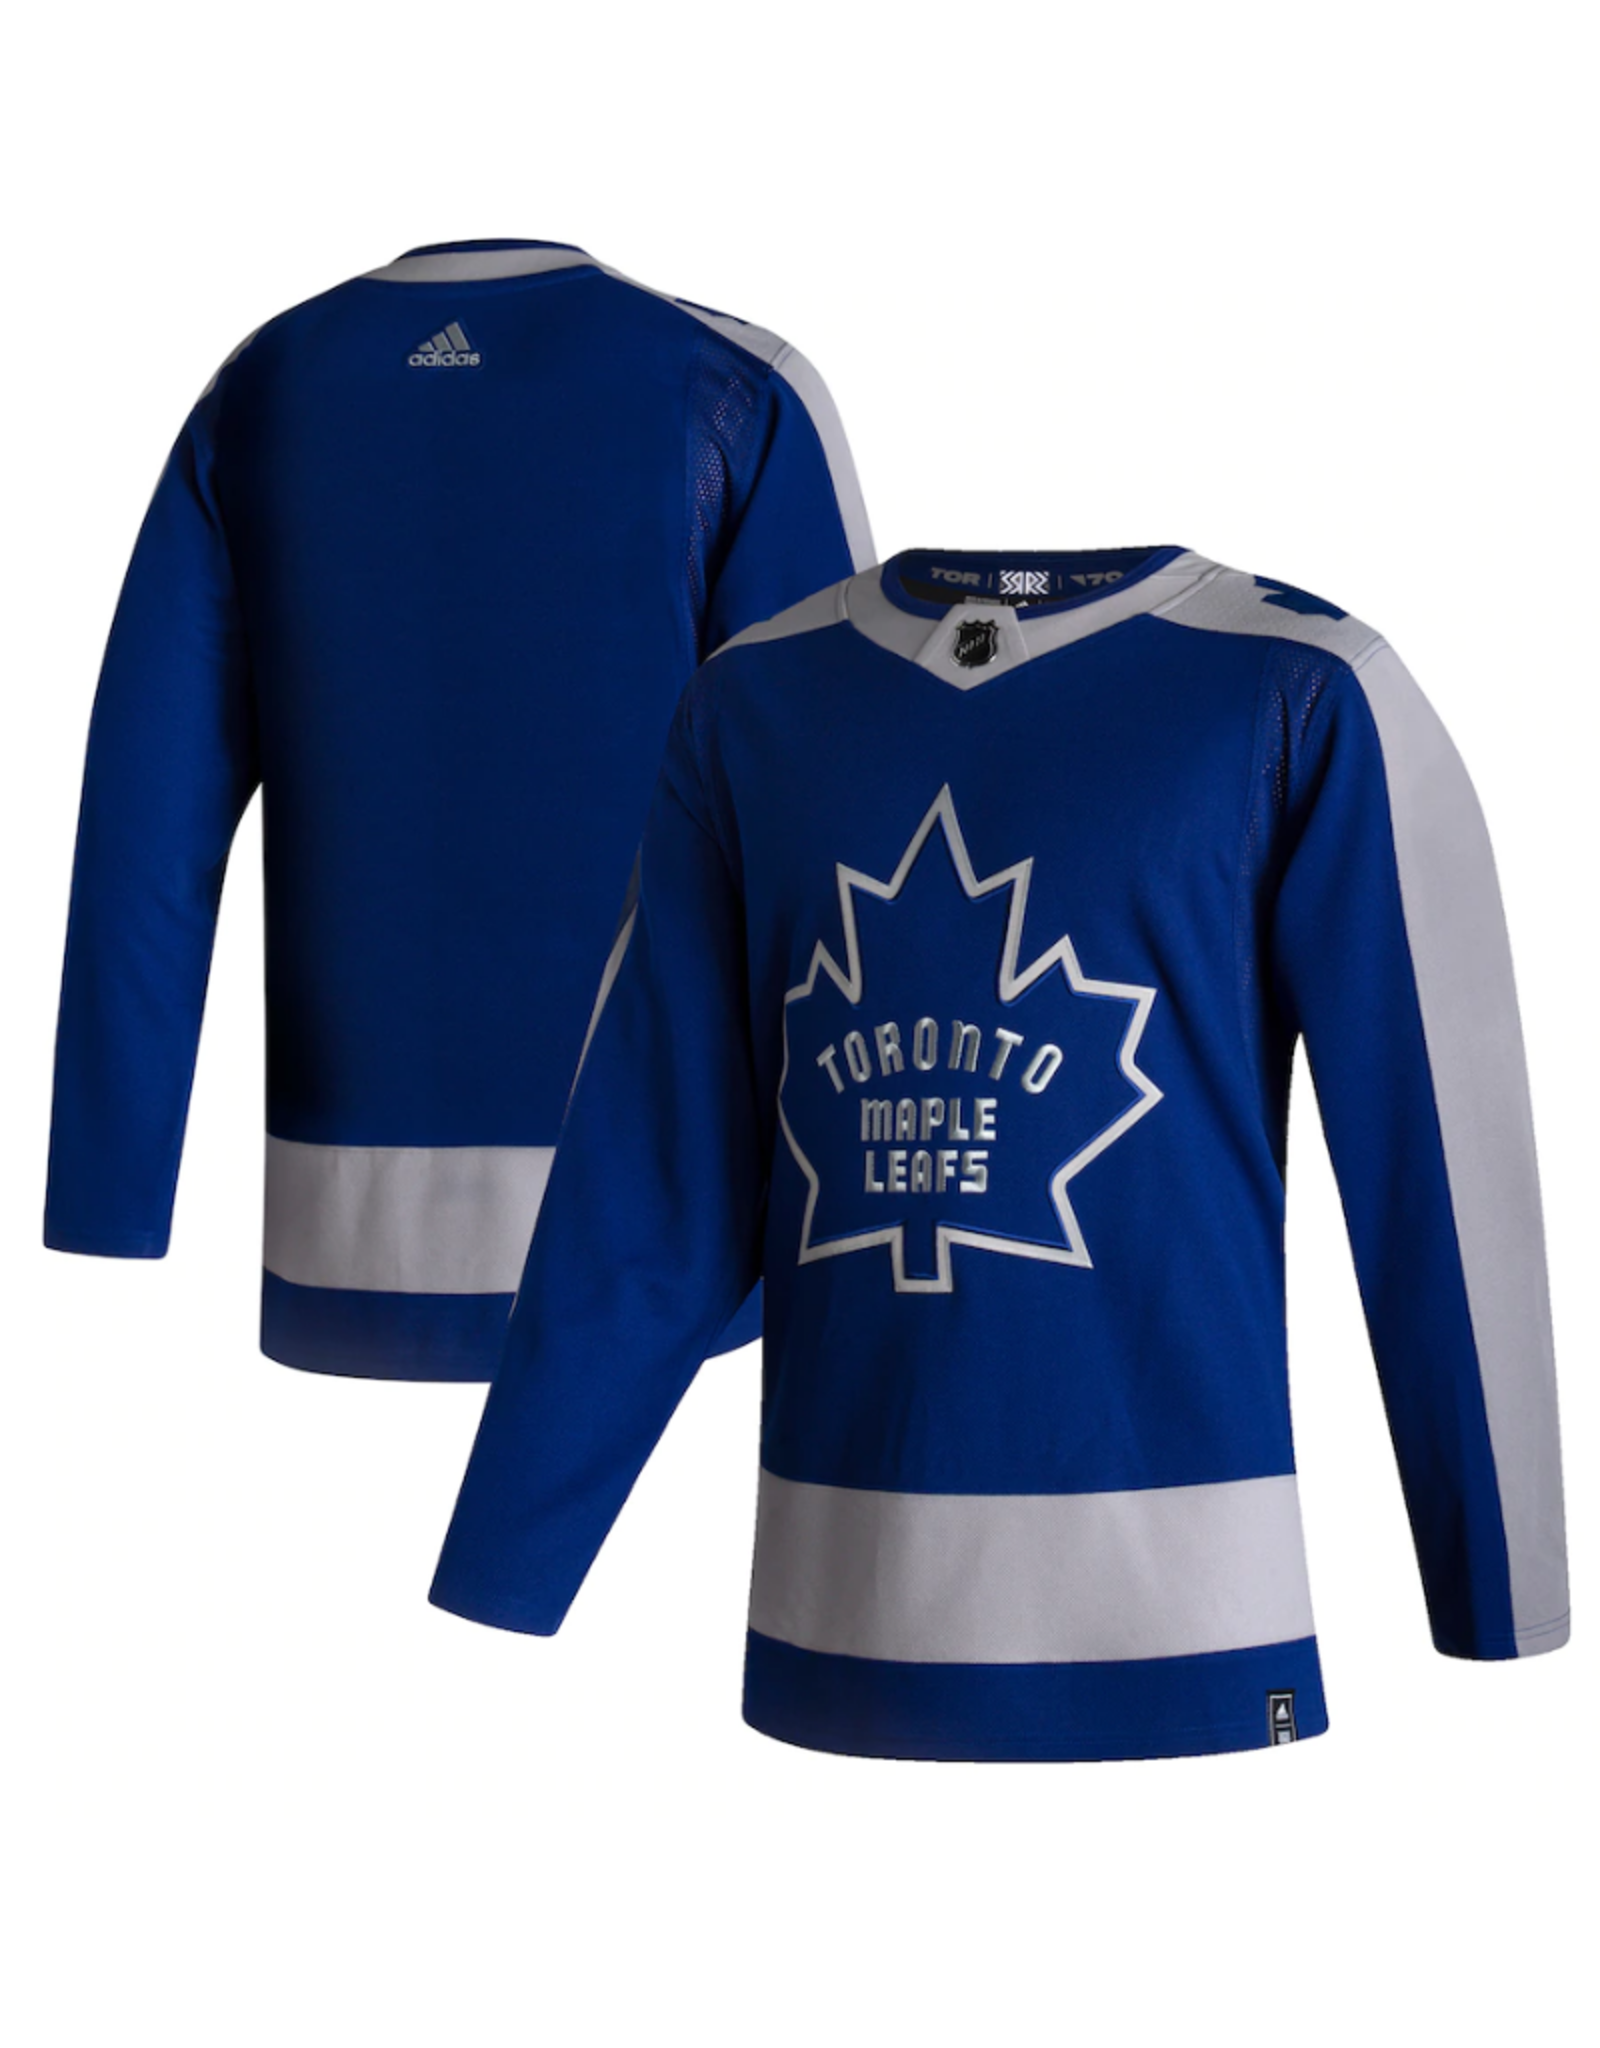 Adidas Adidas Men's Retro Reverse Jersey Toronto Maple Leafs Blue/Grey